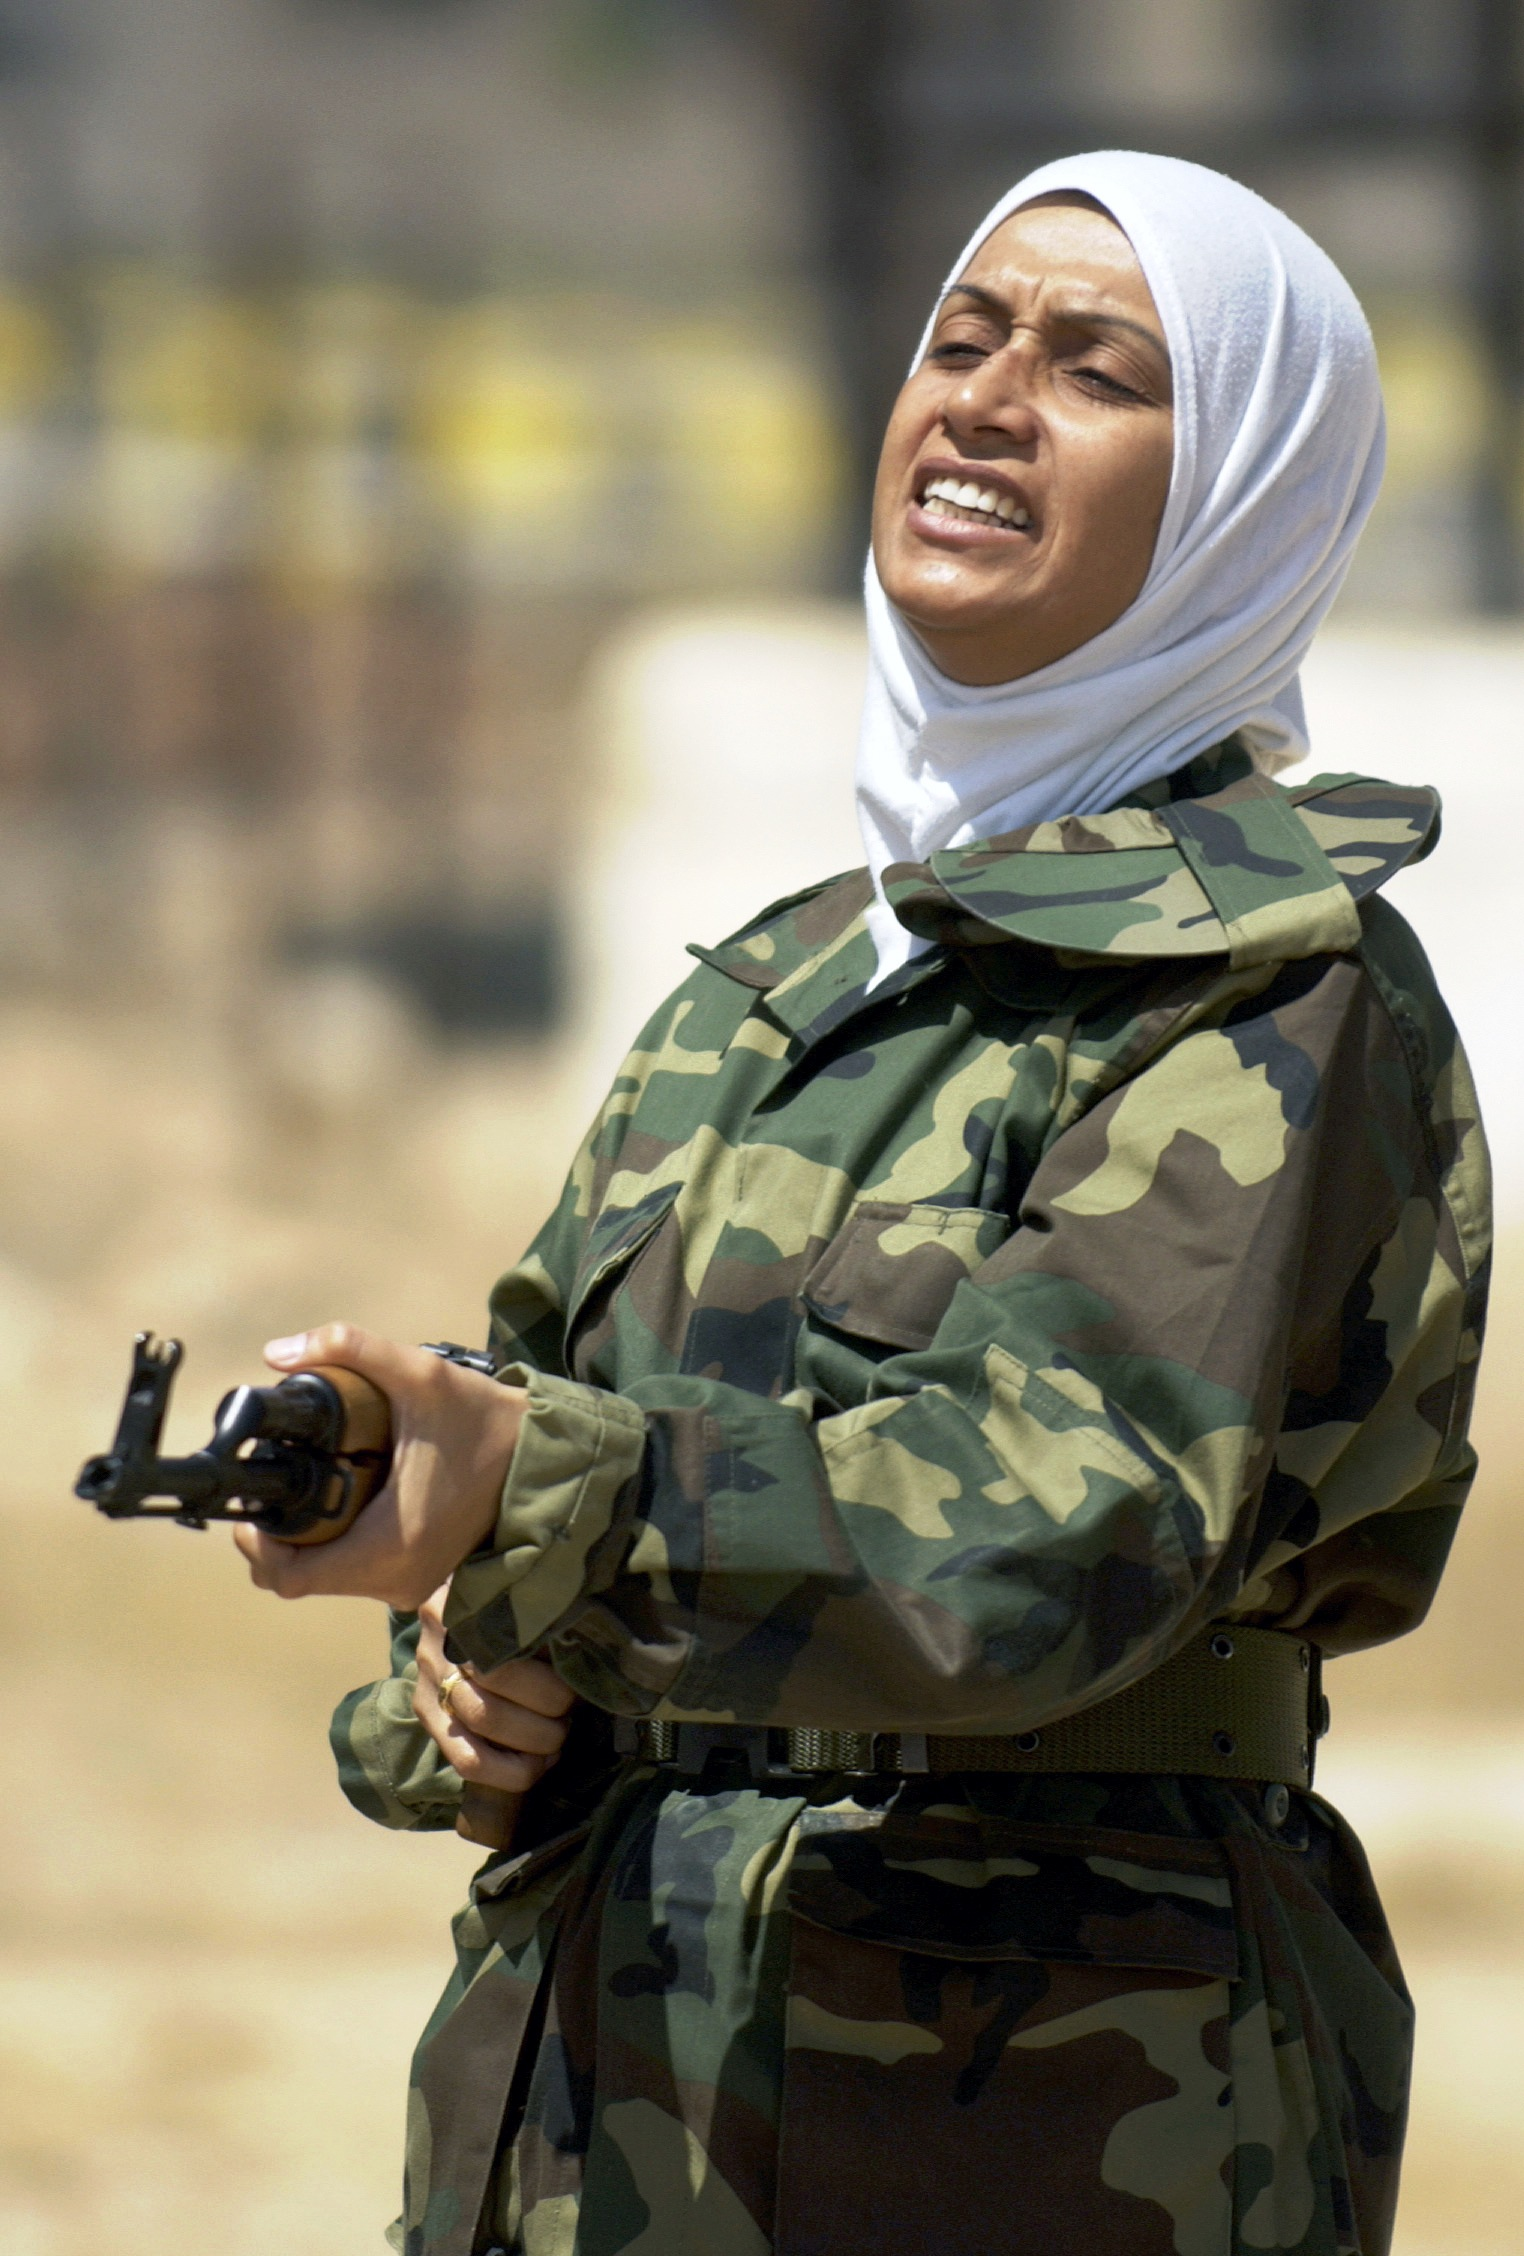 https://upload.wikimedia.org/wikipedia/commons/2/2e/Female_iraqi_soldier_with_a_Kalashnikov.JPEG